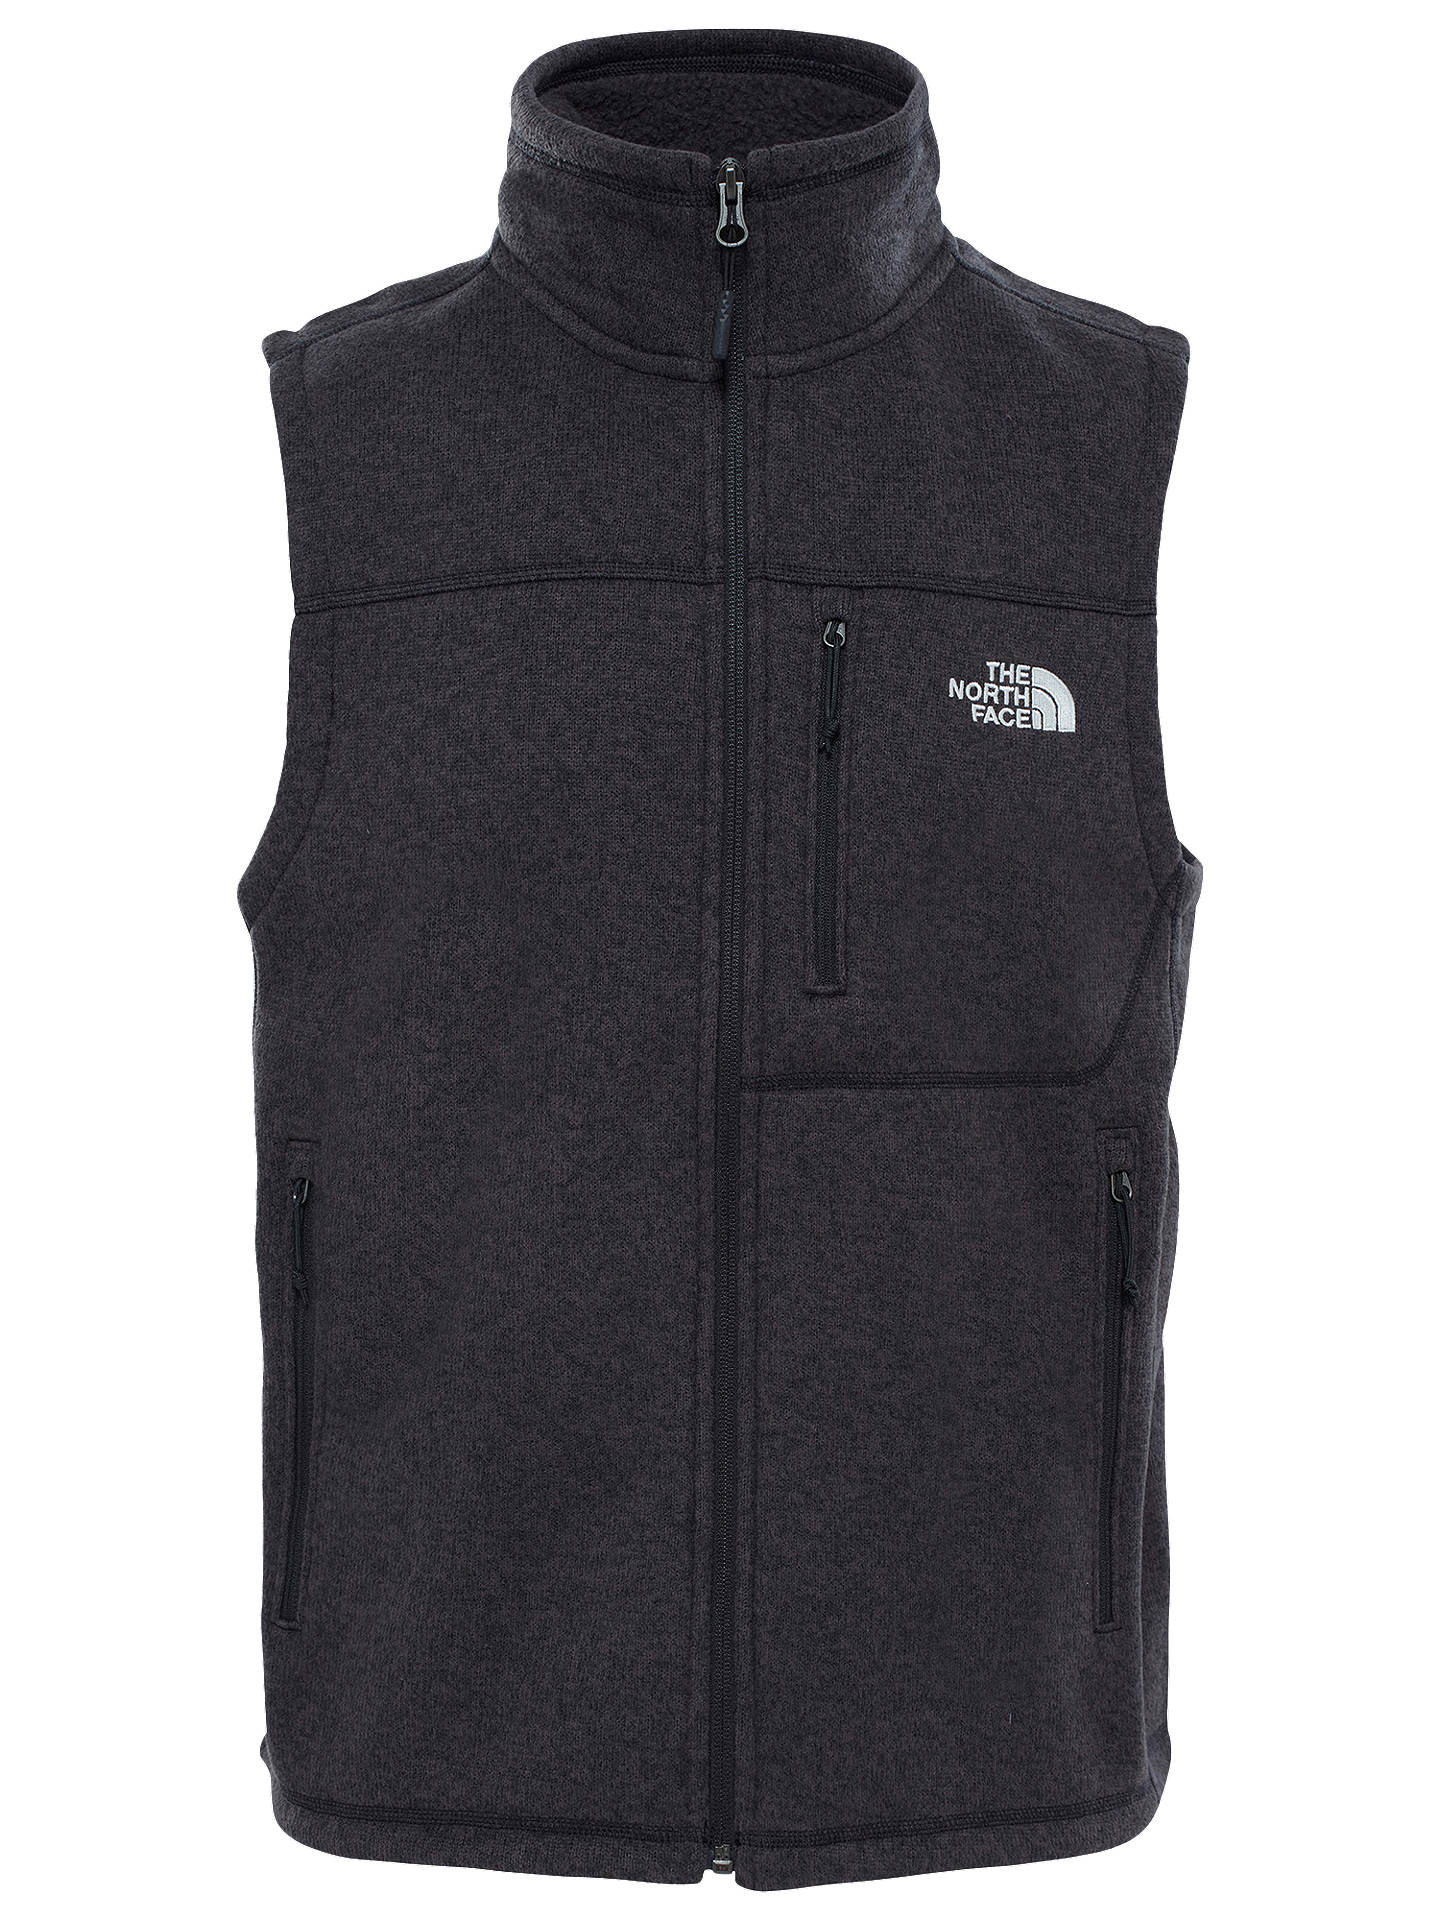 6c1dcb8090e0 Buy The North Face Gordon Lyons Vest